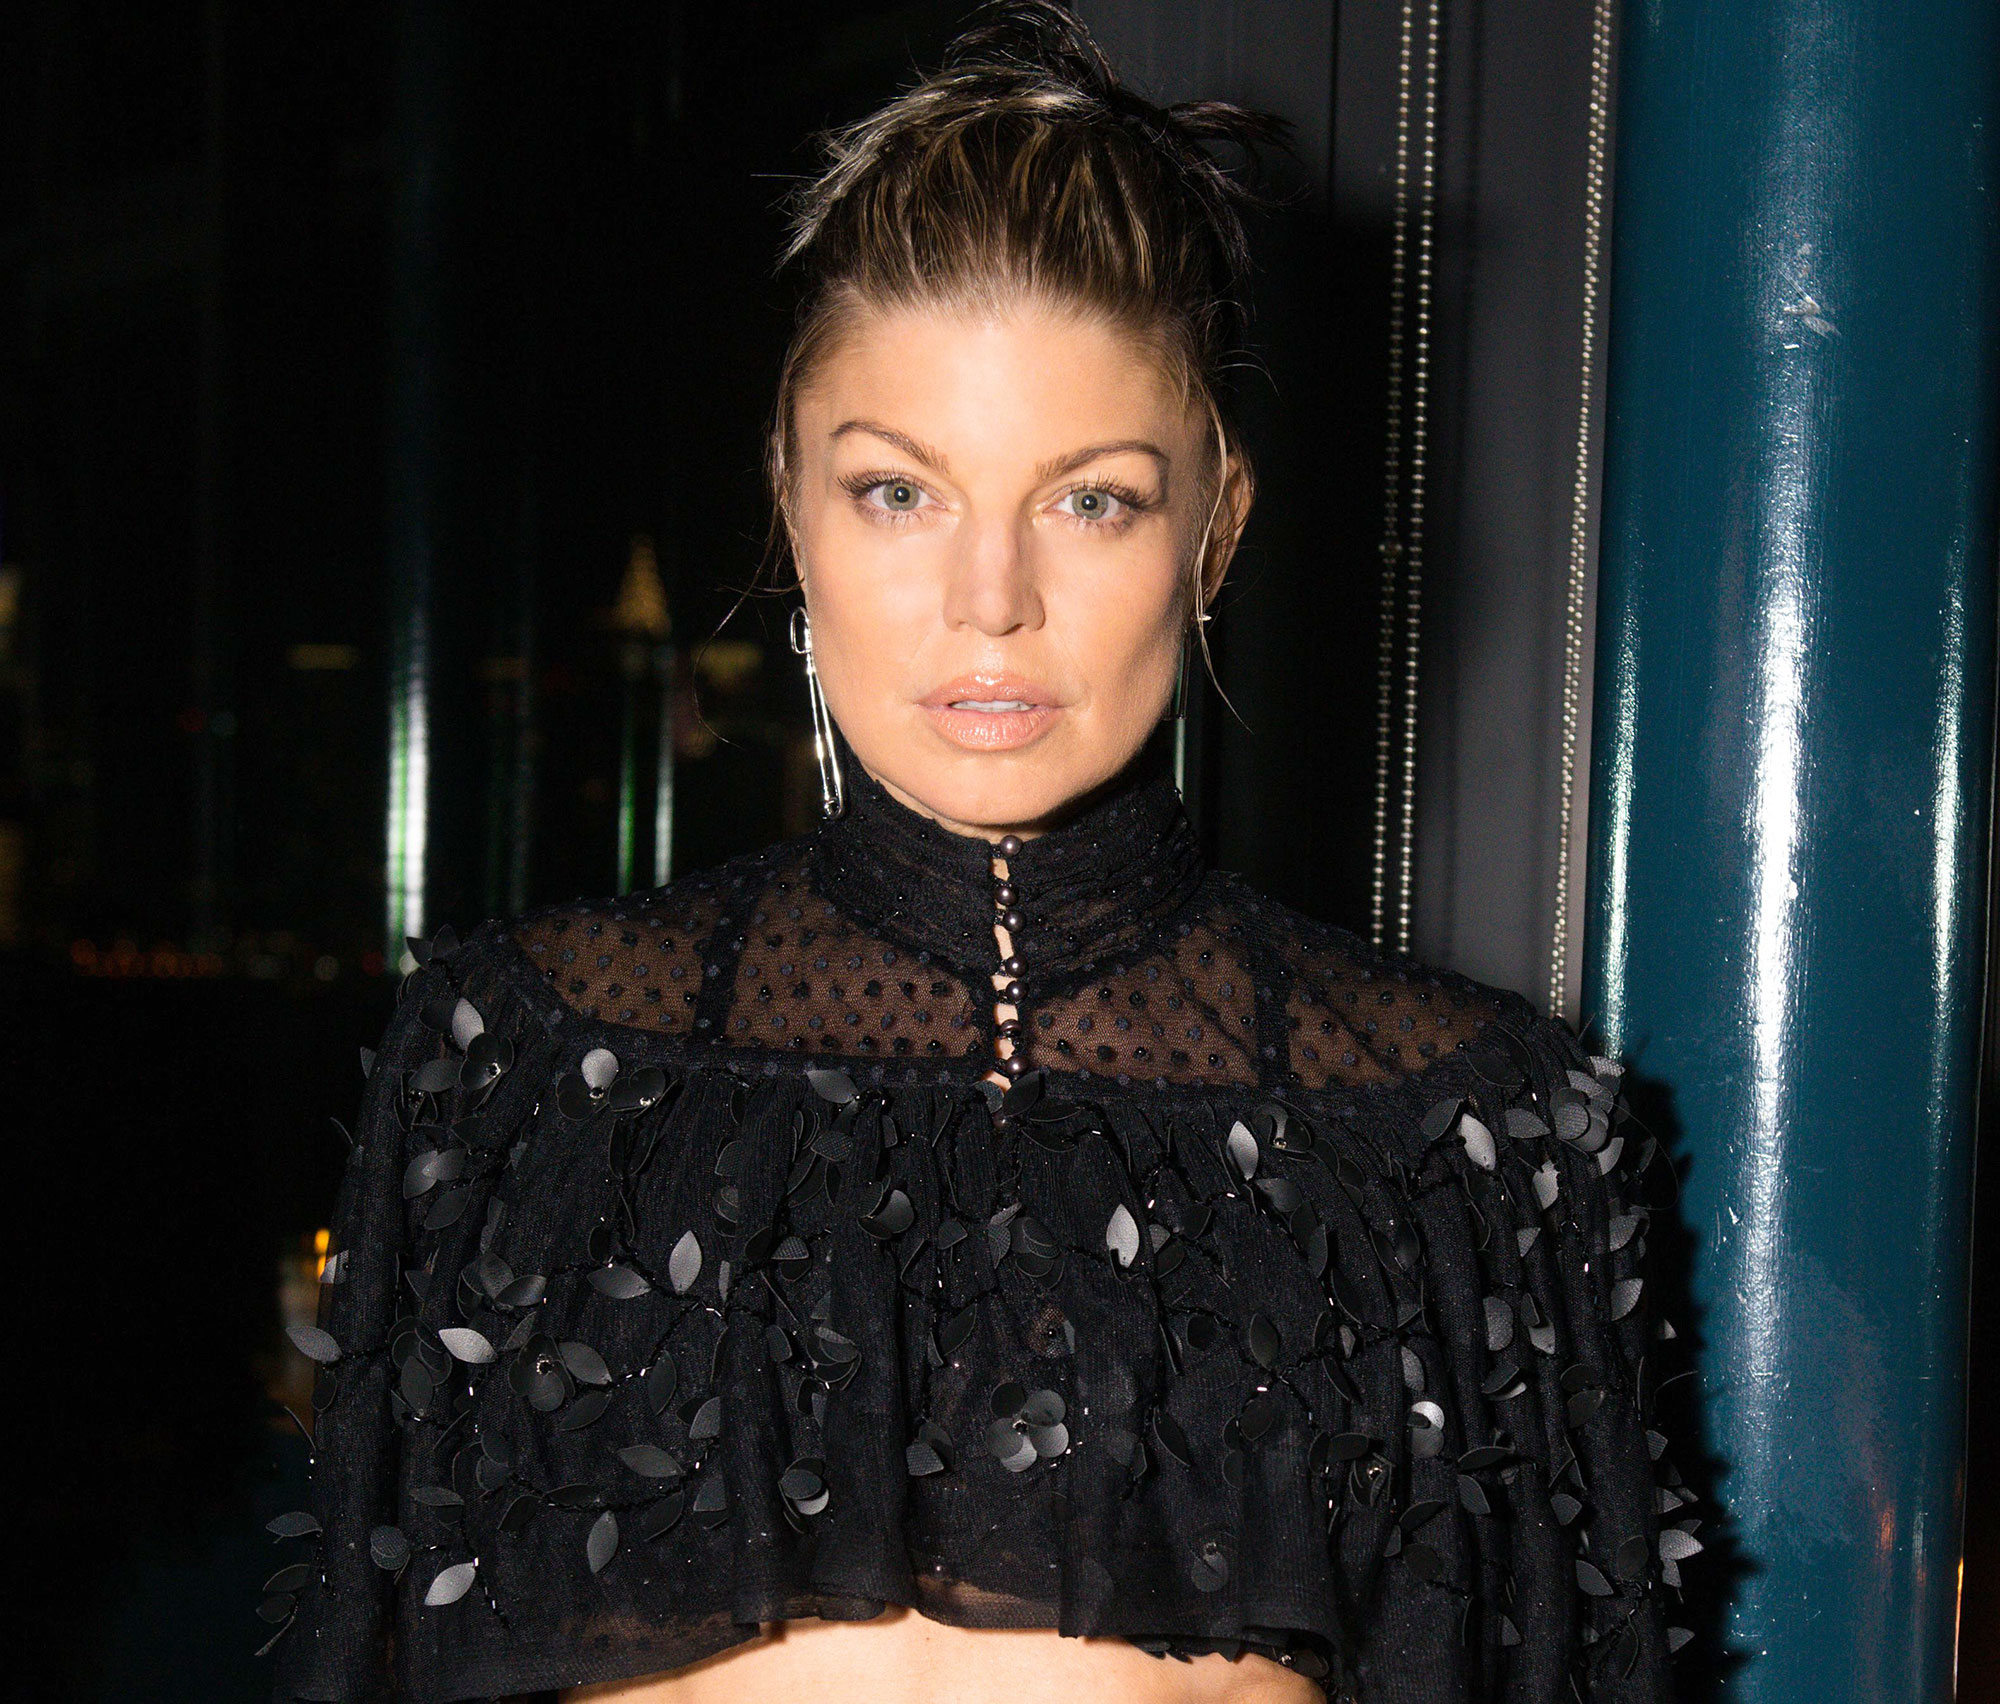 Fergie Double Dutchess VIP Viewing Party, New York, USA - 19 Sep 2017